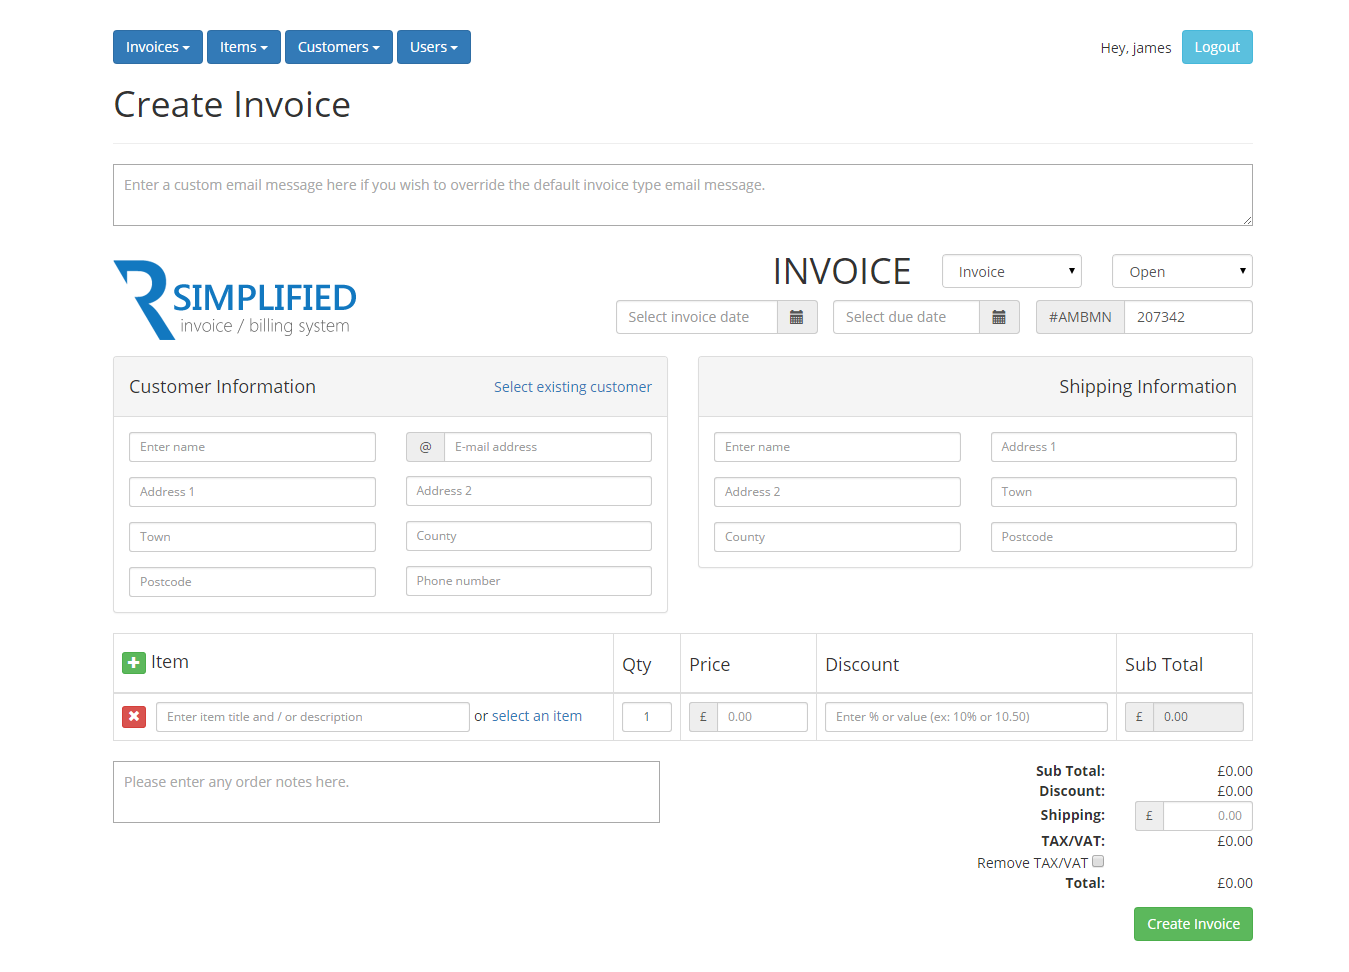 Breakupus  Unique Simplified Php Invoice  Billing System By Rebootdigitaluk  With Hot  Createinvoicepng  With Beauteous Commercial Invoice Also Online Invoicing In Addition Sample Invoice And Invoice Asap As Well As How To Delete An Invoice In Quickbooks Additionally Dealer Invoice Price From Codecanyonnet With Breakupus  Hot Simplified Php Invoice  Billing System By Rebootdigitaluk  With Beauteous  Createinvoicepng  And Unique Commercial Invoice Also Online Invoicing In Addition Sample Invoice From Codecanyonnet